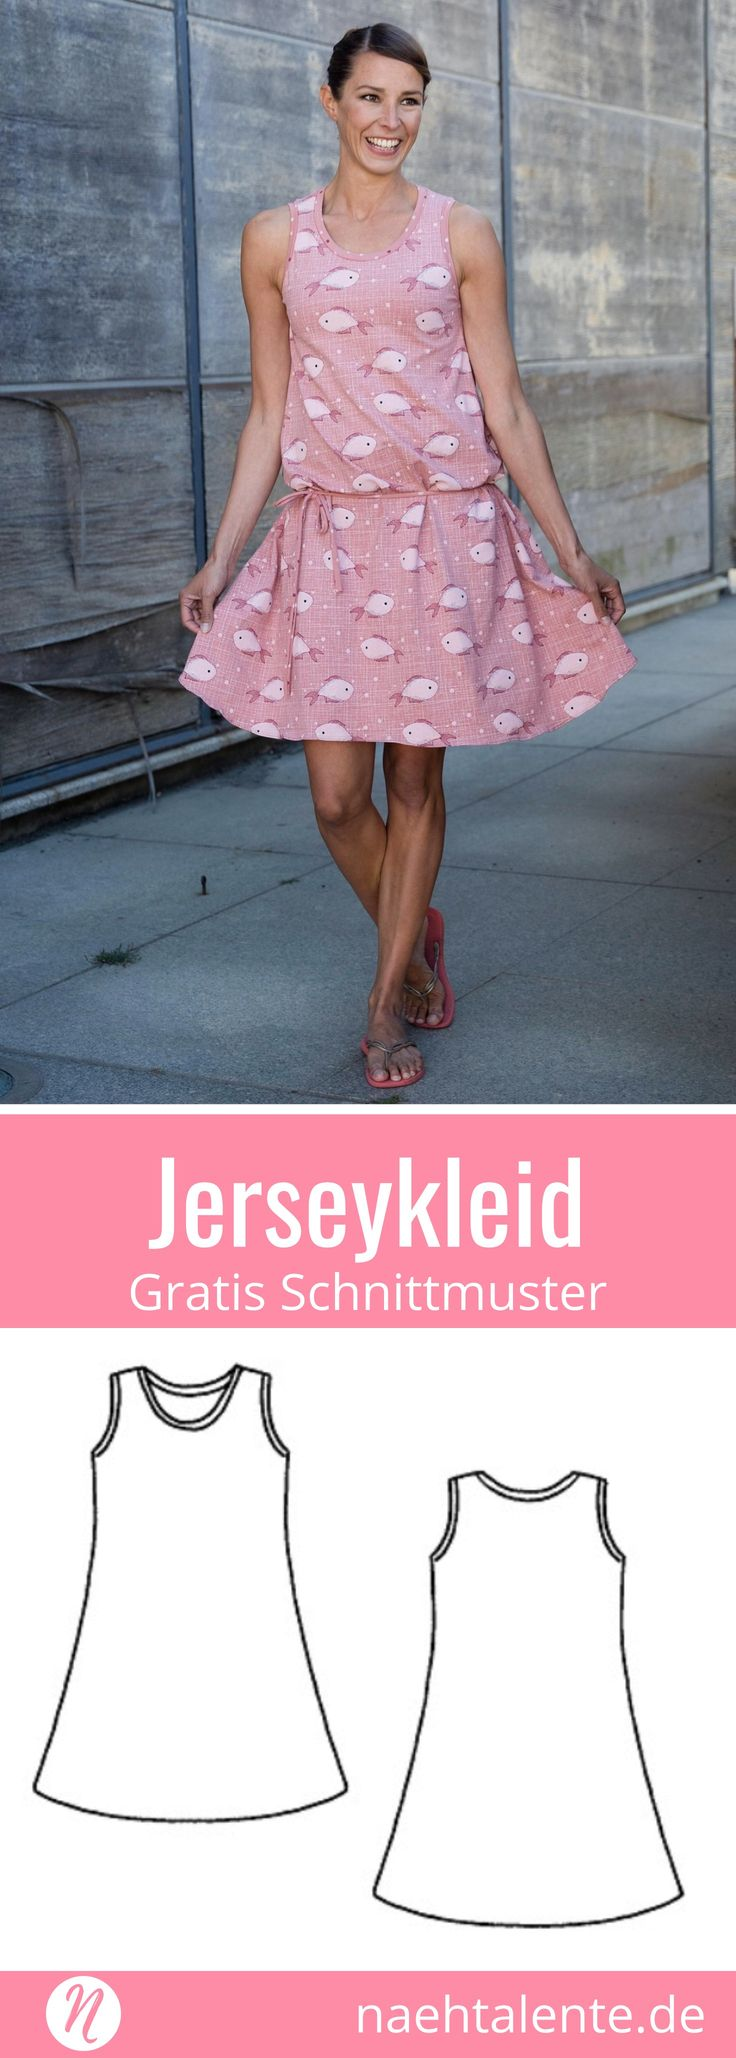 Kostenloses Schnittmuster für ein ärmelloses Jerseykleid für Damen. PDF-Schnitt zum Drucken in Gr. 32 - 54. ✂ Nähtalente.de - Magazin für kostenlose Schnittmuster und Hobbyschneiderinnen ✂ Free sewing pattern for a woman swinging knit dress. PDF-sewing pattern for print at home in size 32 - 54. ✂ Nähtalente.de - Magazin for sewing and free sewing patterns ✂ #nähen #freebook #schnittmuster #gratis #nähenmachtglücklich #freesewingpattern #handmade #diy